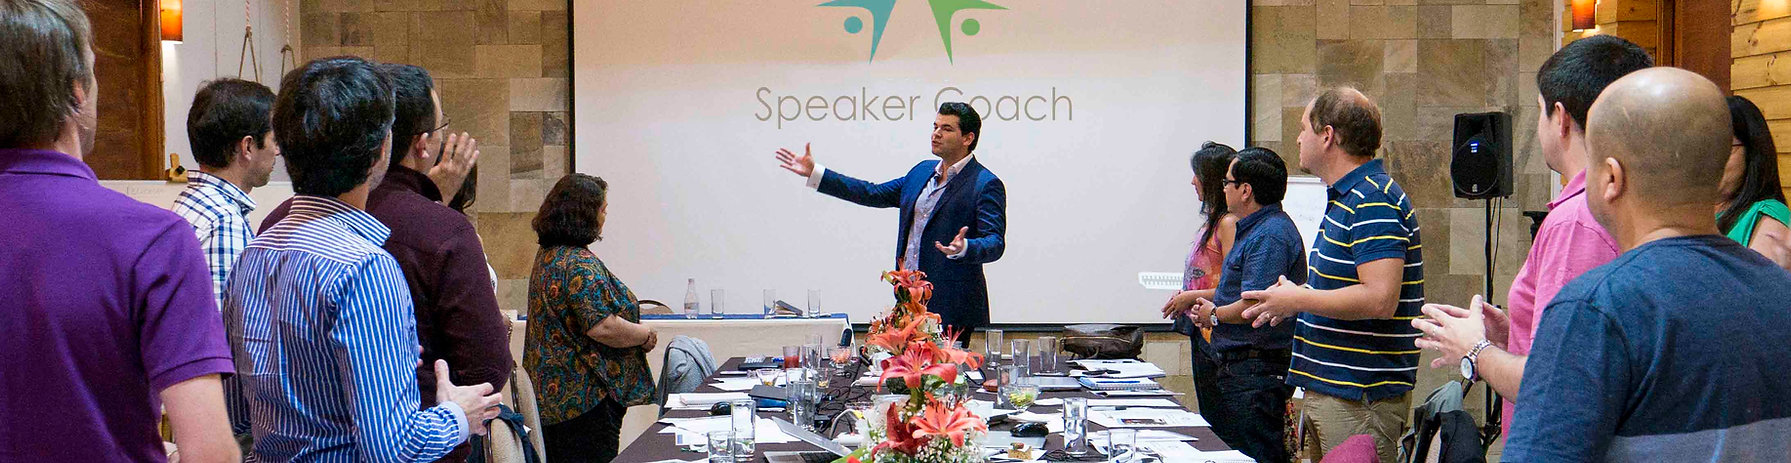 SpeakerCoach Curso de Oratoria